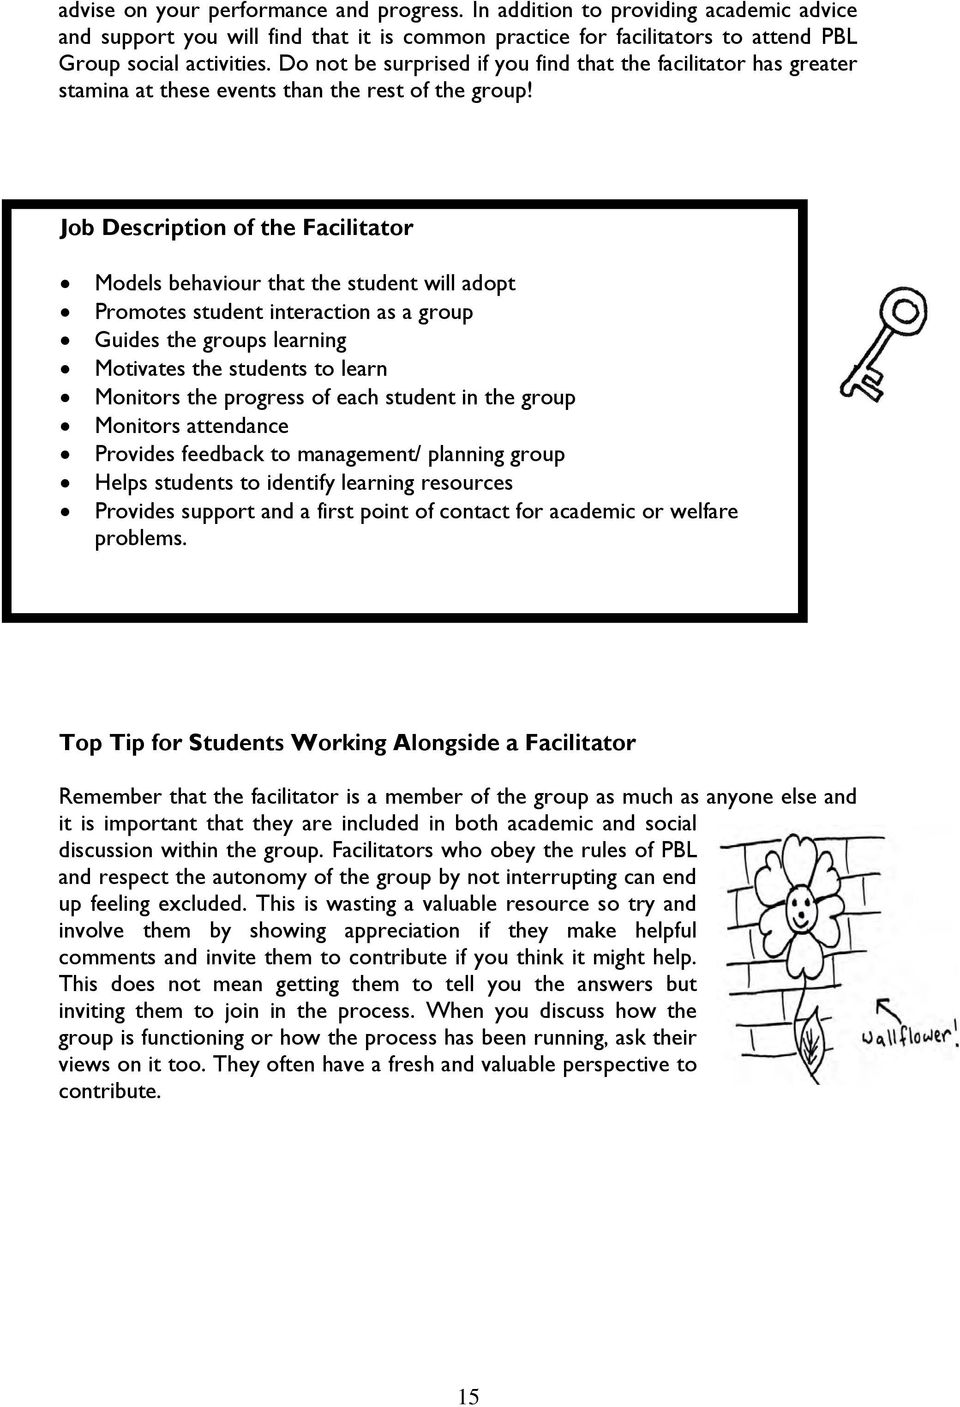 Job Description of the Facilitator Models behaviour that the student will adopt Promotes student interaction as a group Guides the groups learning Motivates the students to learn Monitors the